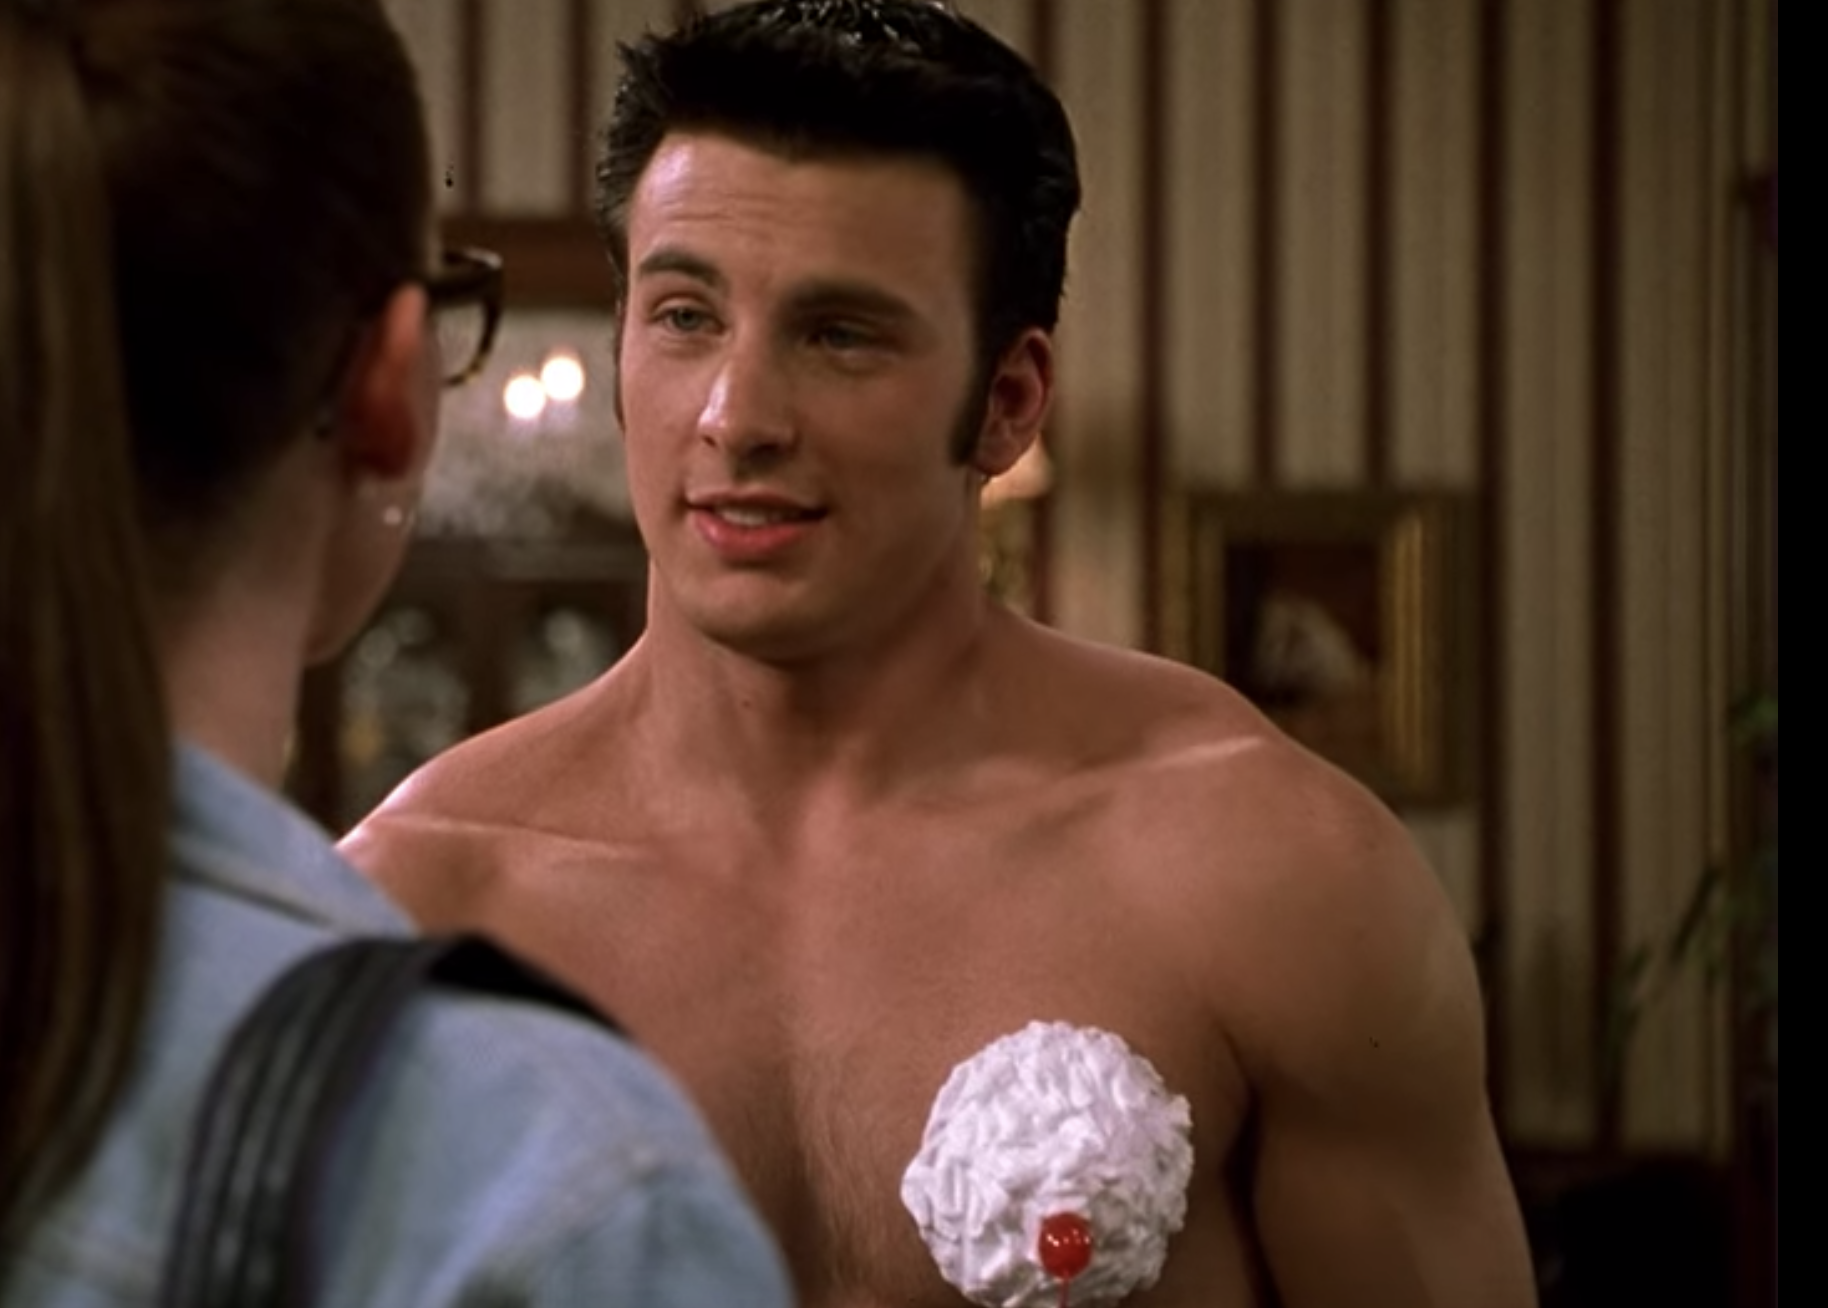 Chris Evans smiles a crooked smile with whipped cream and cherries covering his nipples asJake